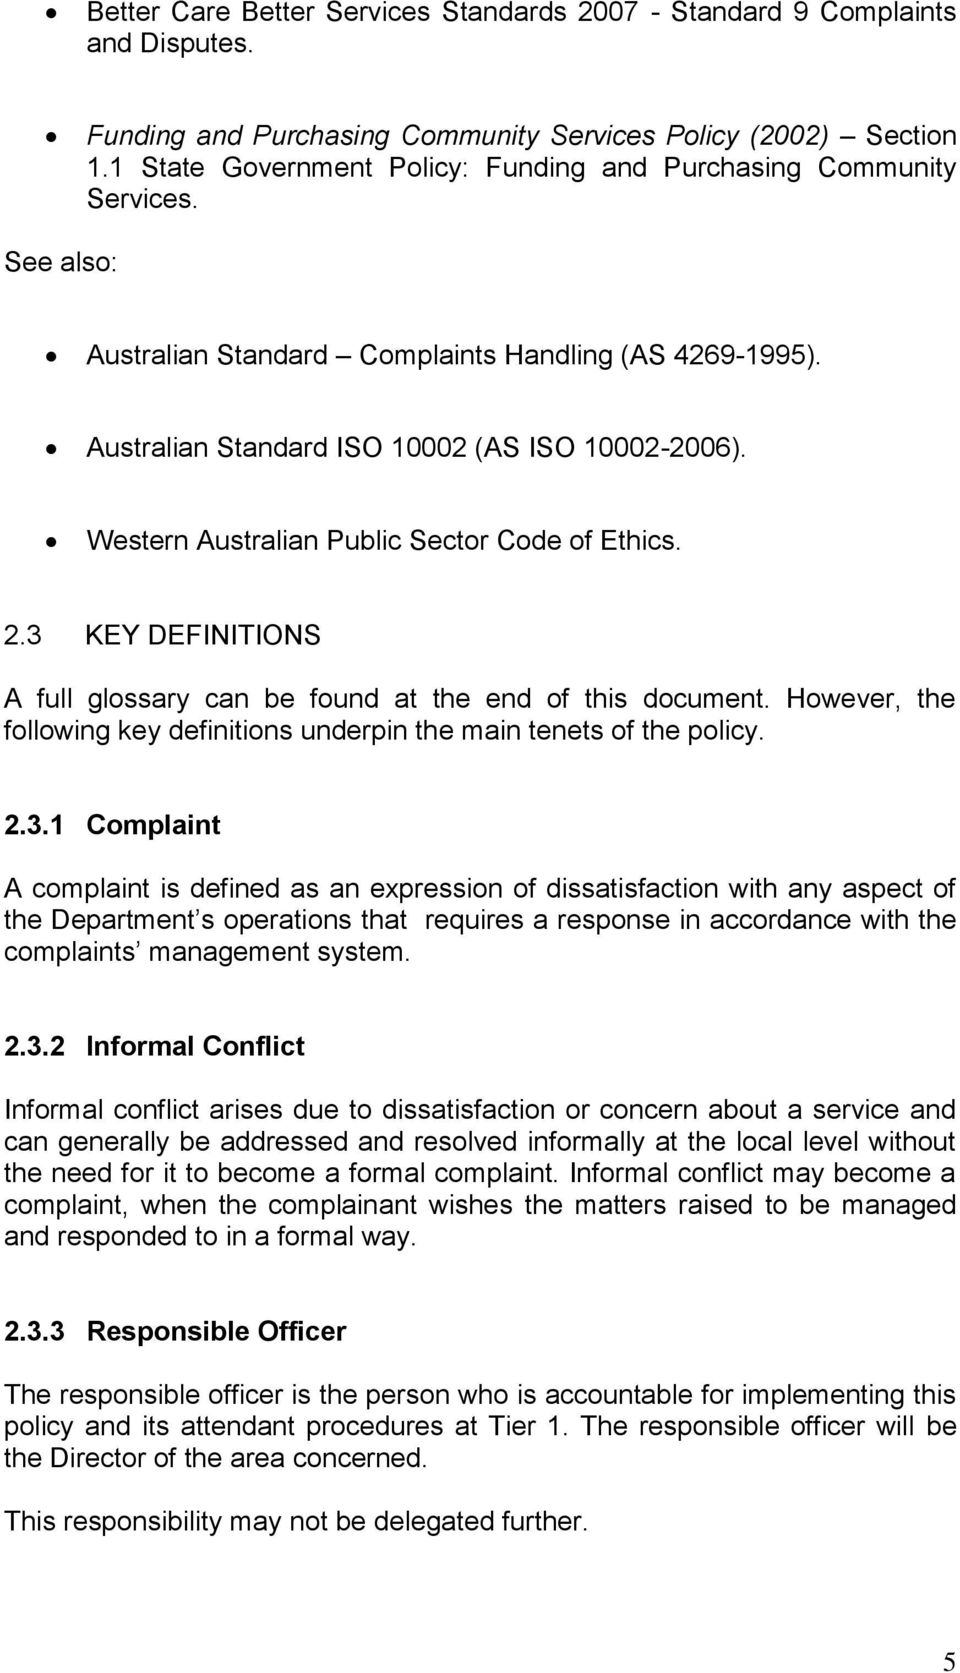 Western Australian Public Sector Code of Ethics. 2.3 KEY DEFINITIONS A full glossary can be found at the end of this document.